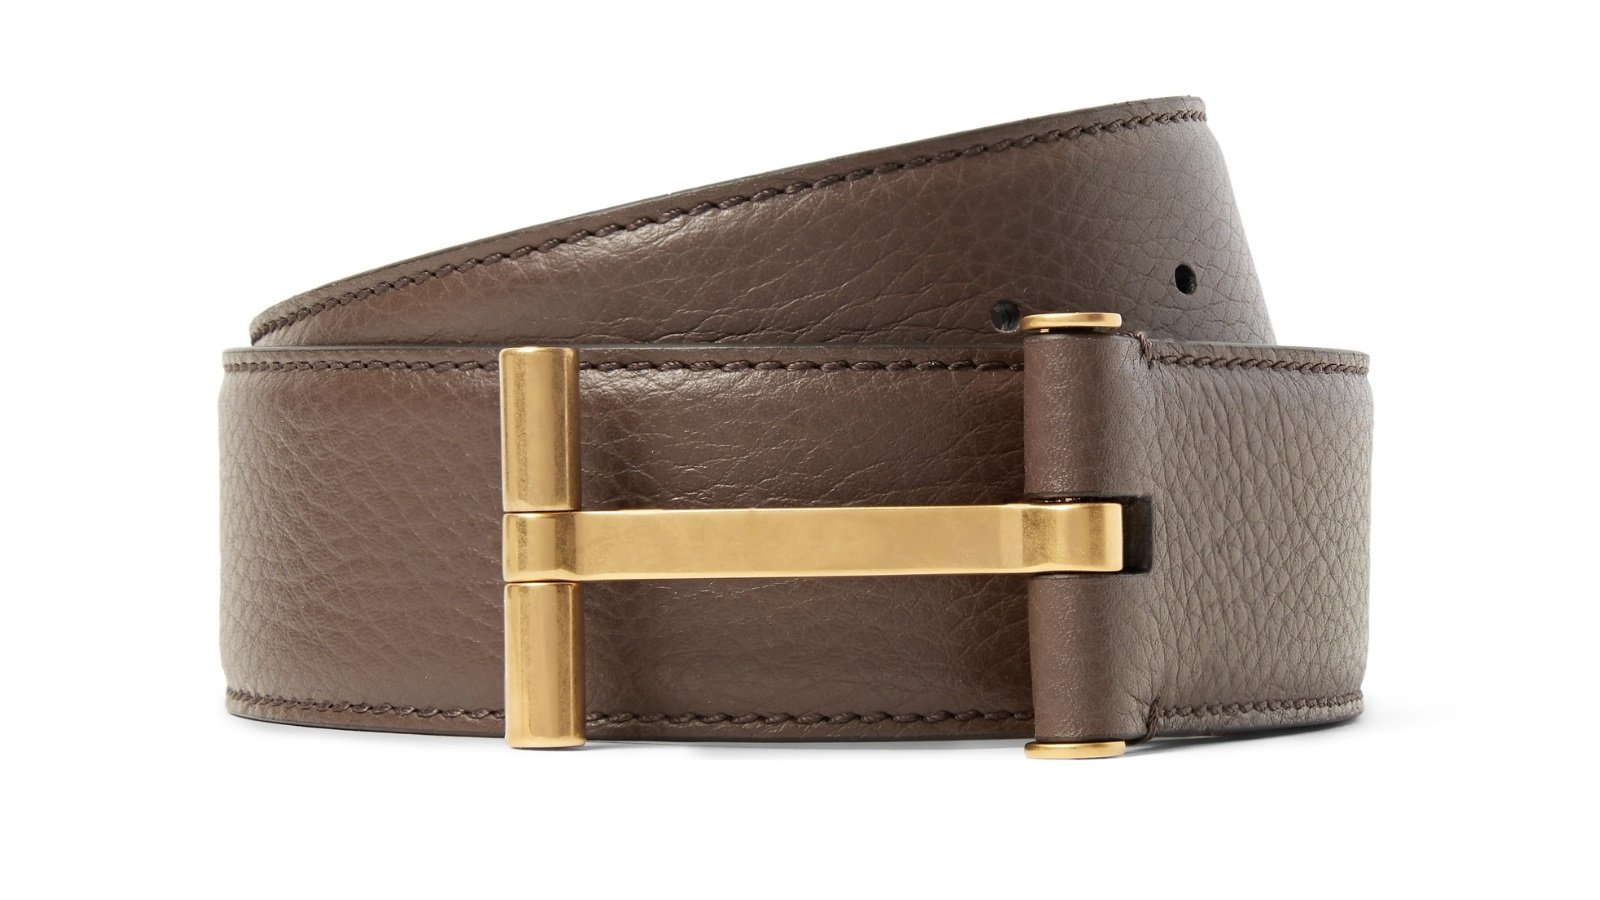 66d818e8bcf If you re looking to spend a significant sum on a designer belt